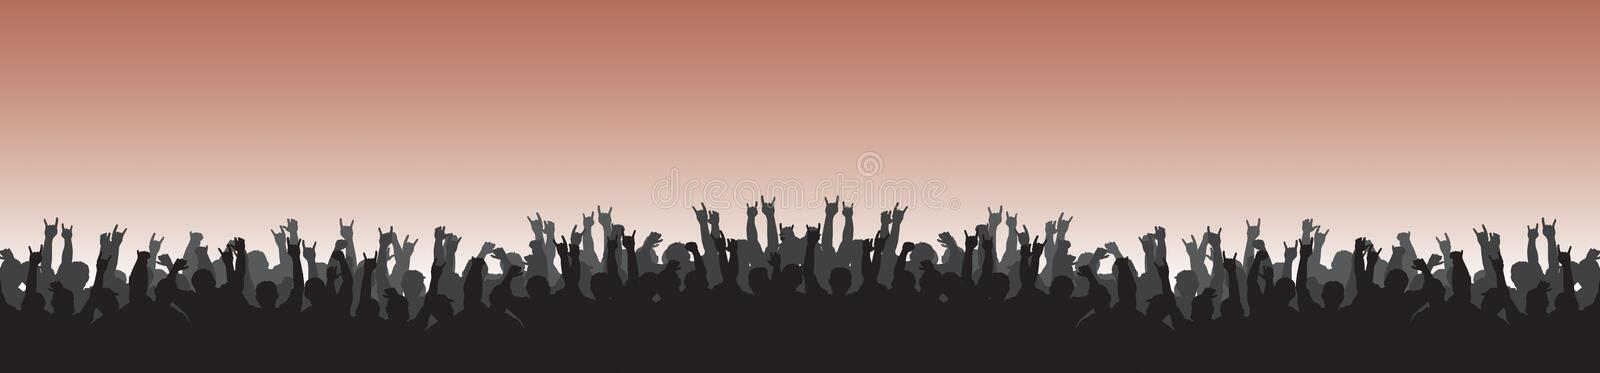 Cheering Crowd 22 Stock Photography